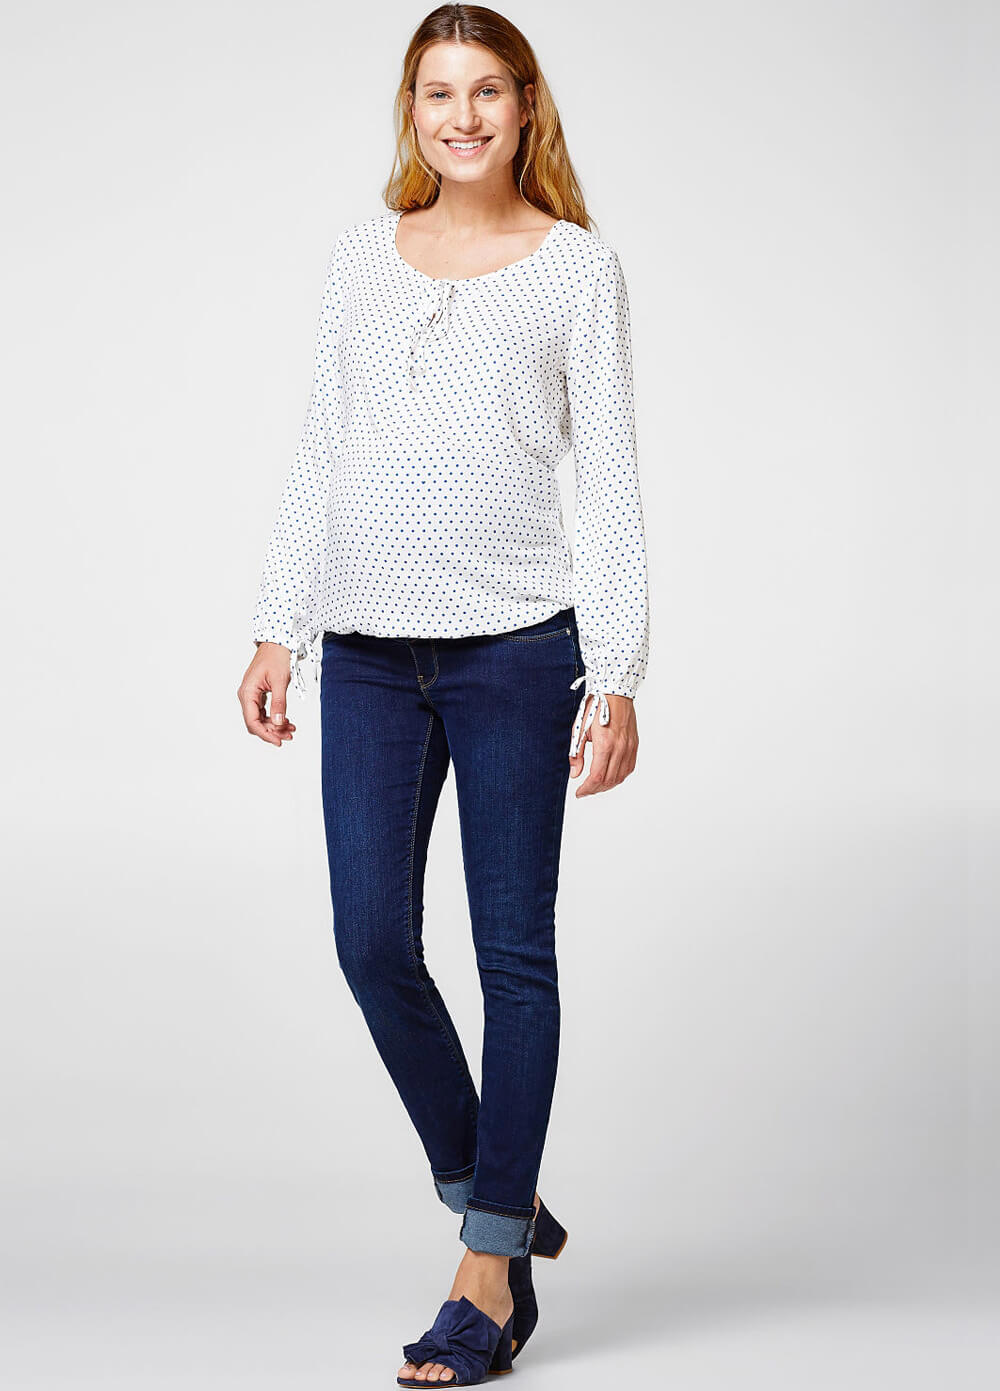 Floaty Polkadot Maternity Blouse by Esprit